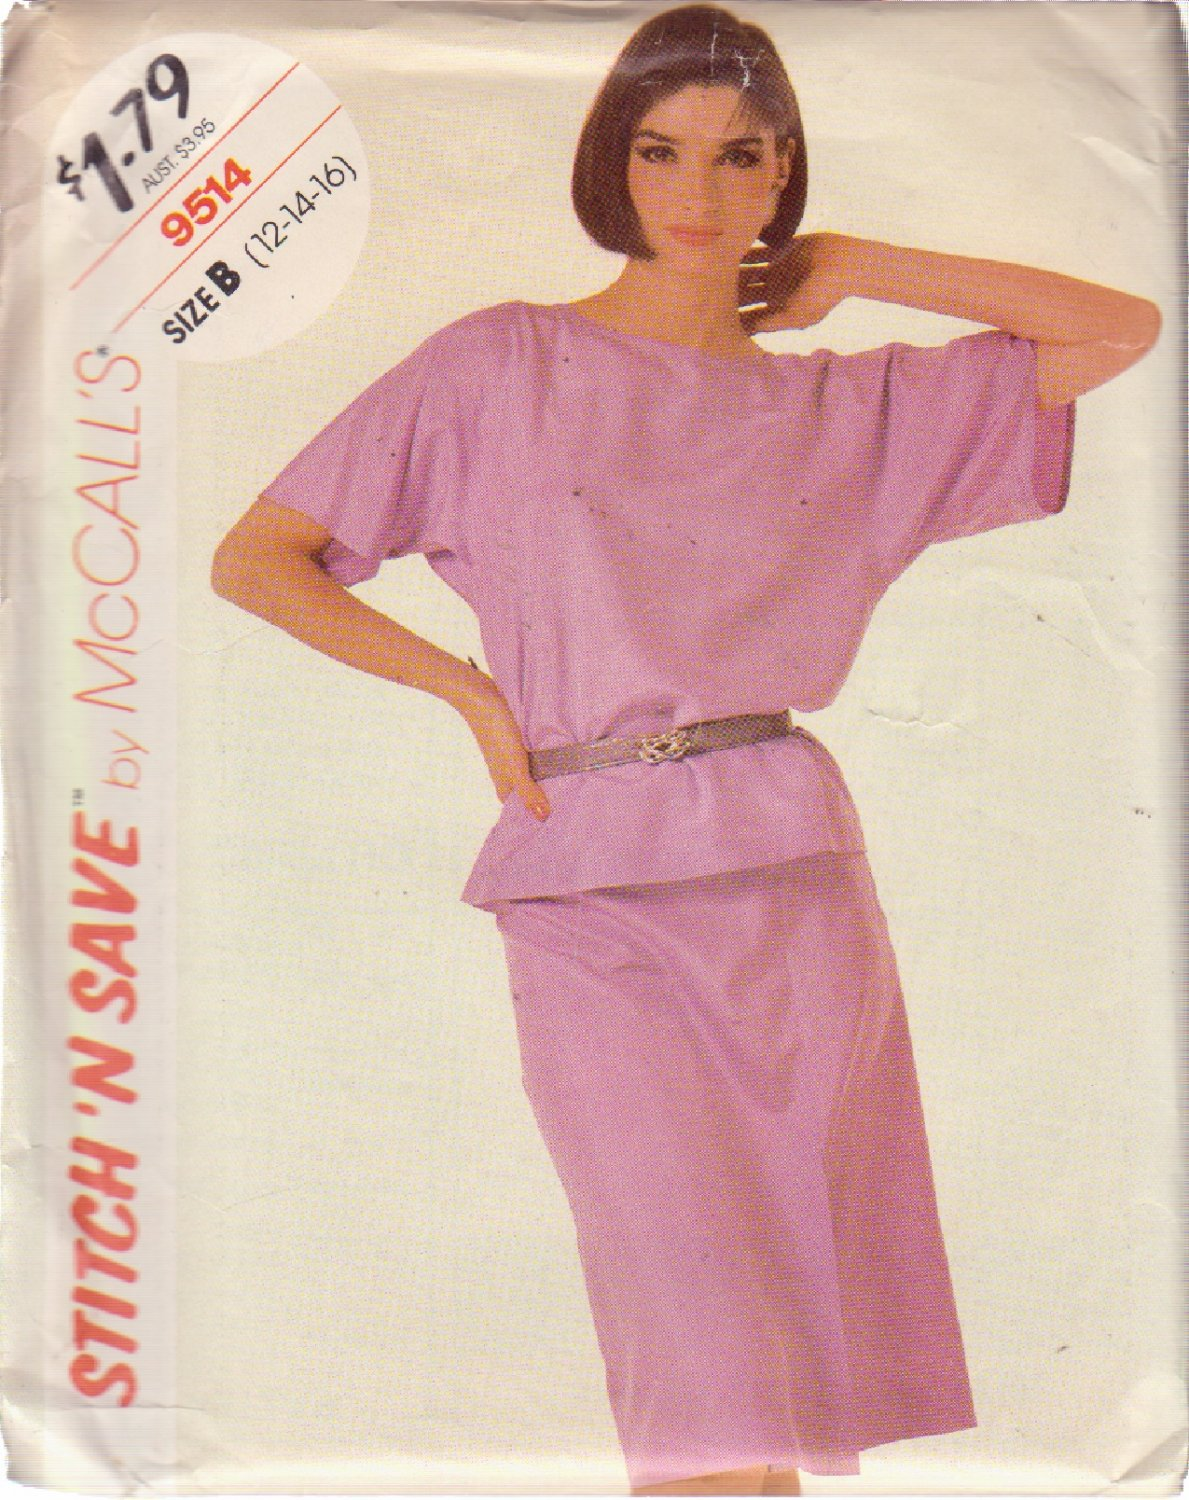 McCALL'S VINTAGE PATTERN 9514 MISSES' TOP AND SKIRT SIZE 12/14/16 UNCUT